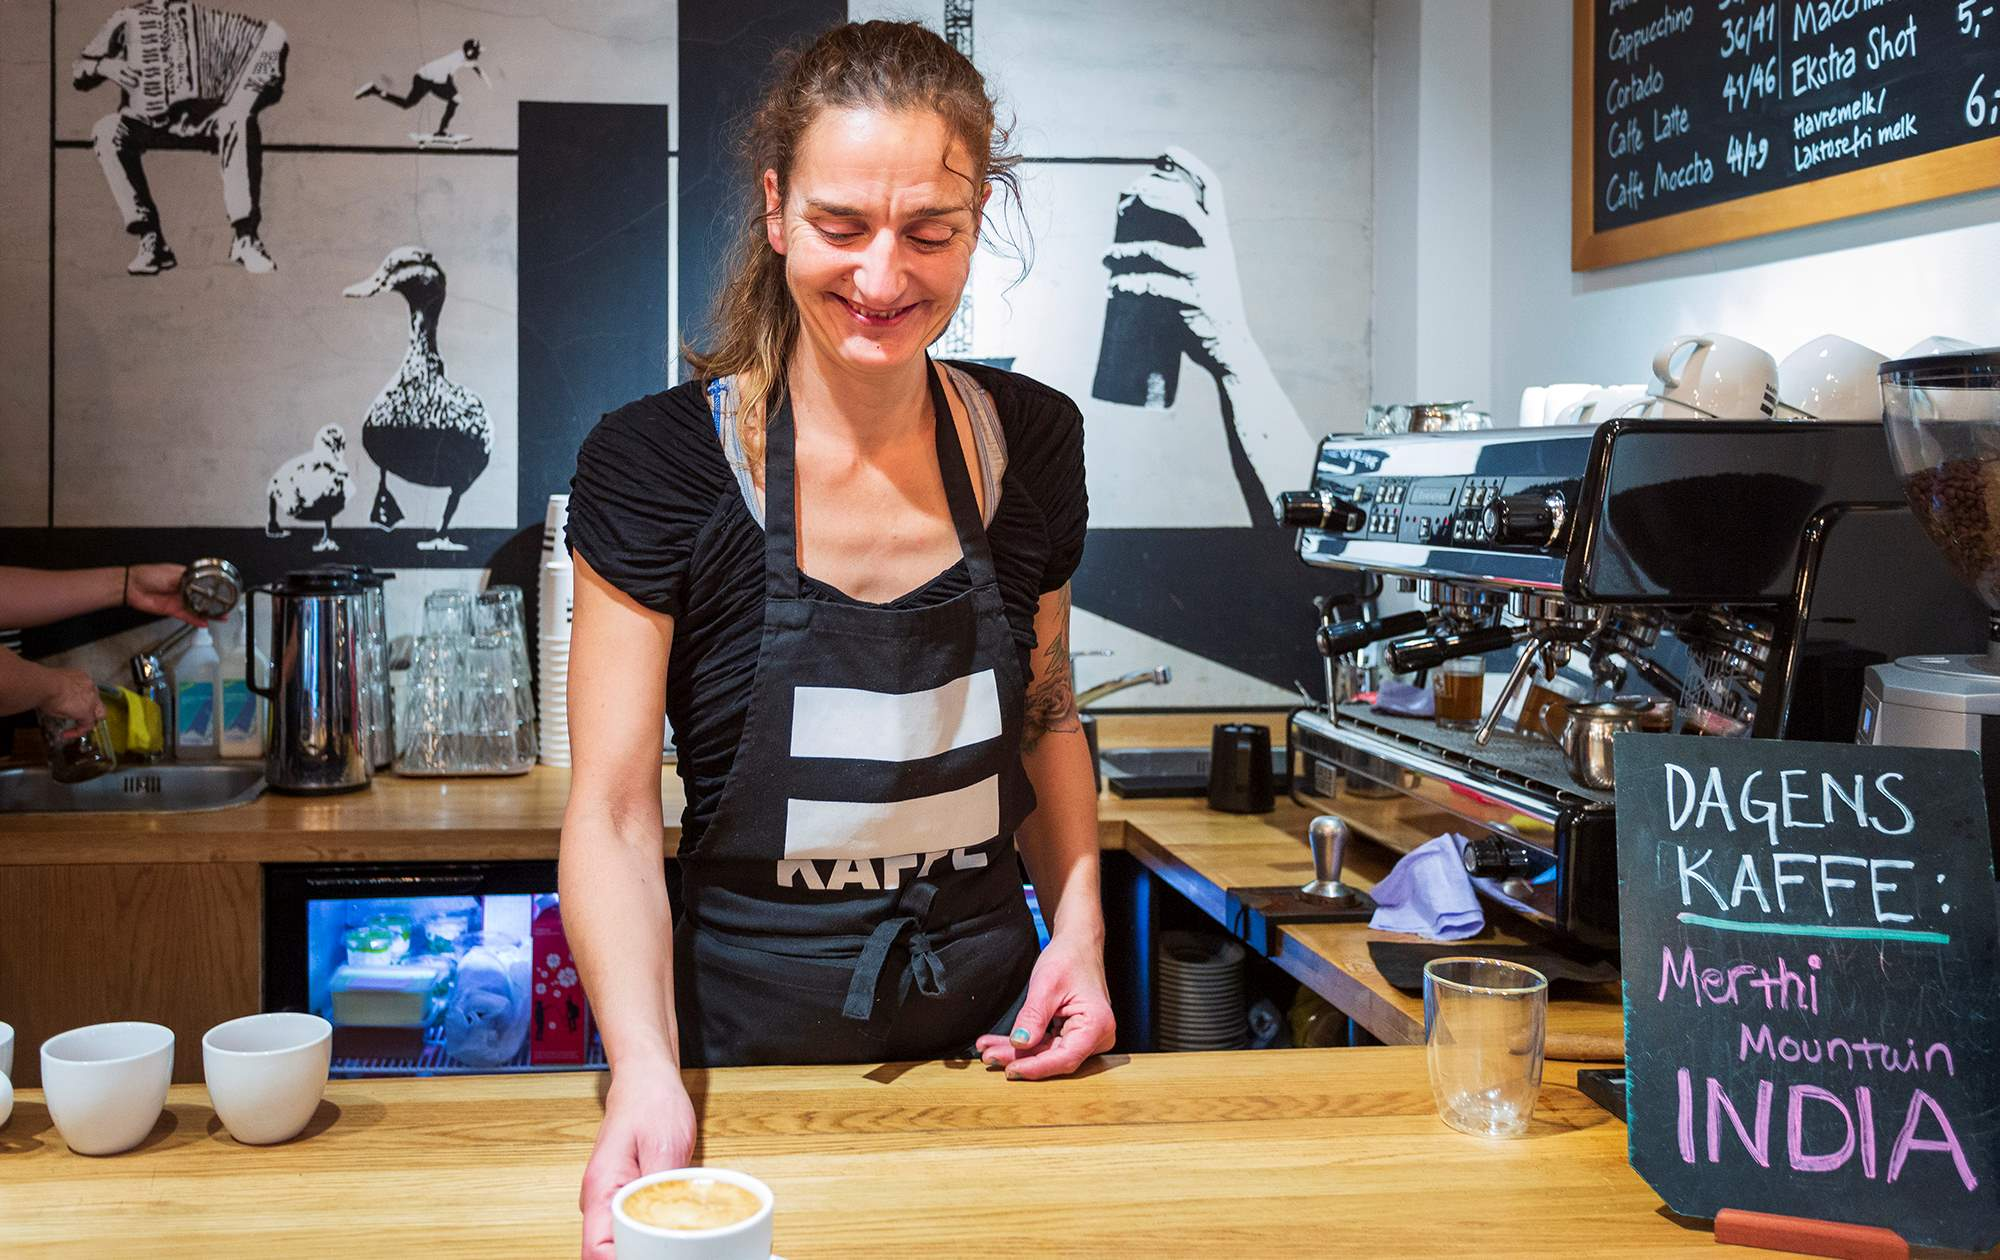 Barista at =Kaffe